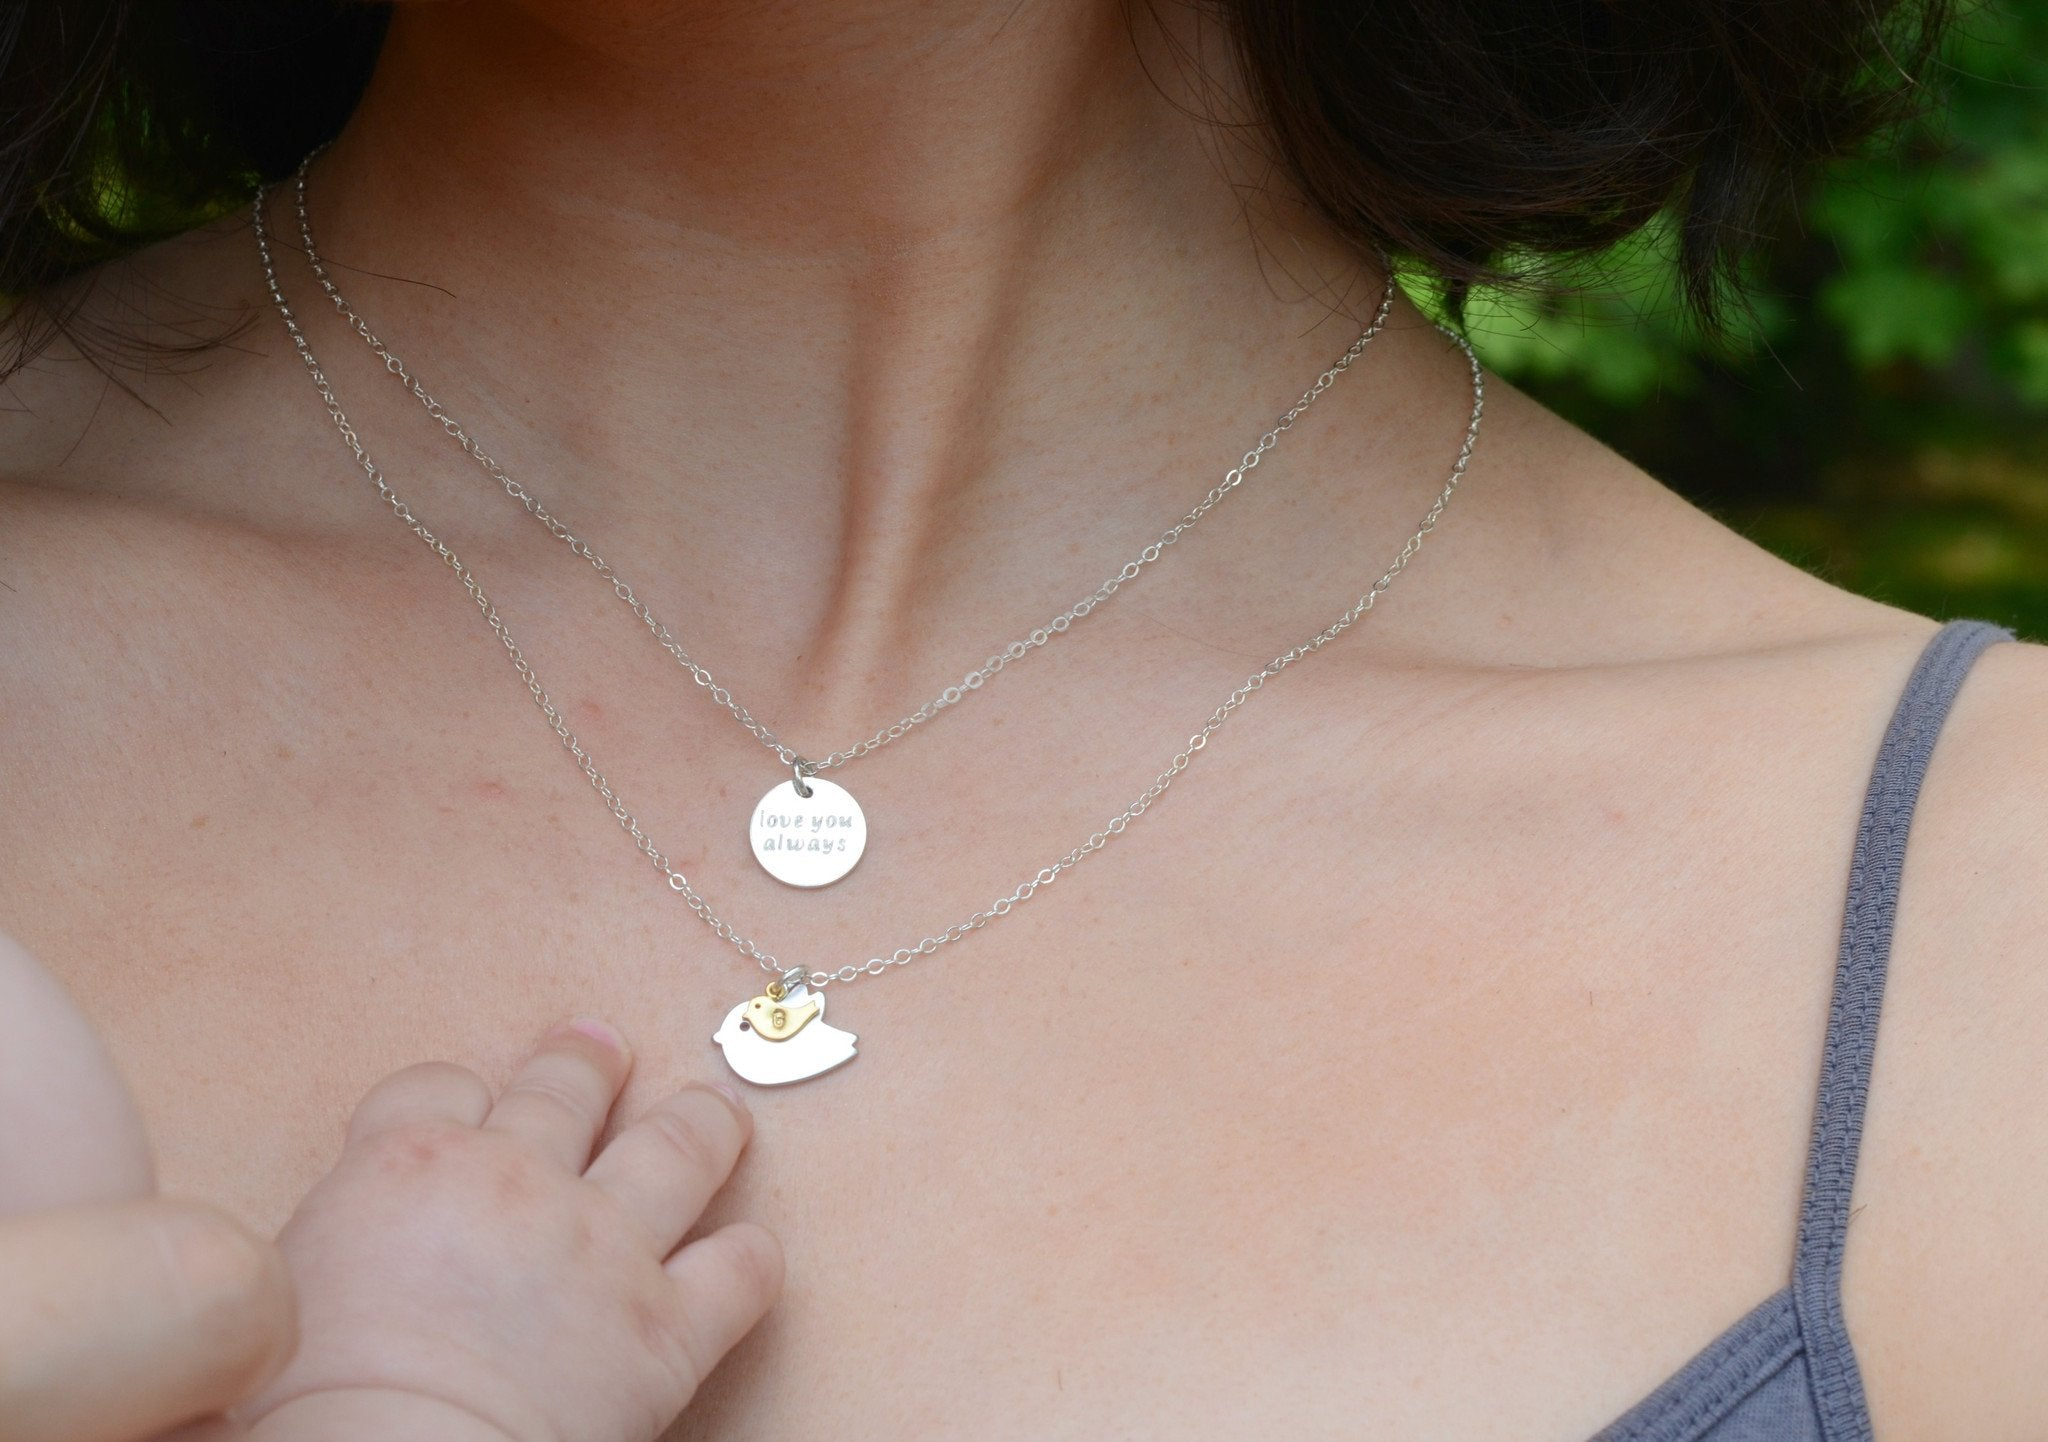 plated the necklaces august baby alessia birthstone in gold necklacess chains name special design necklace